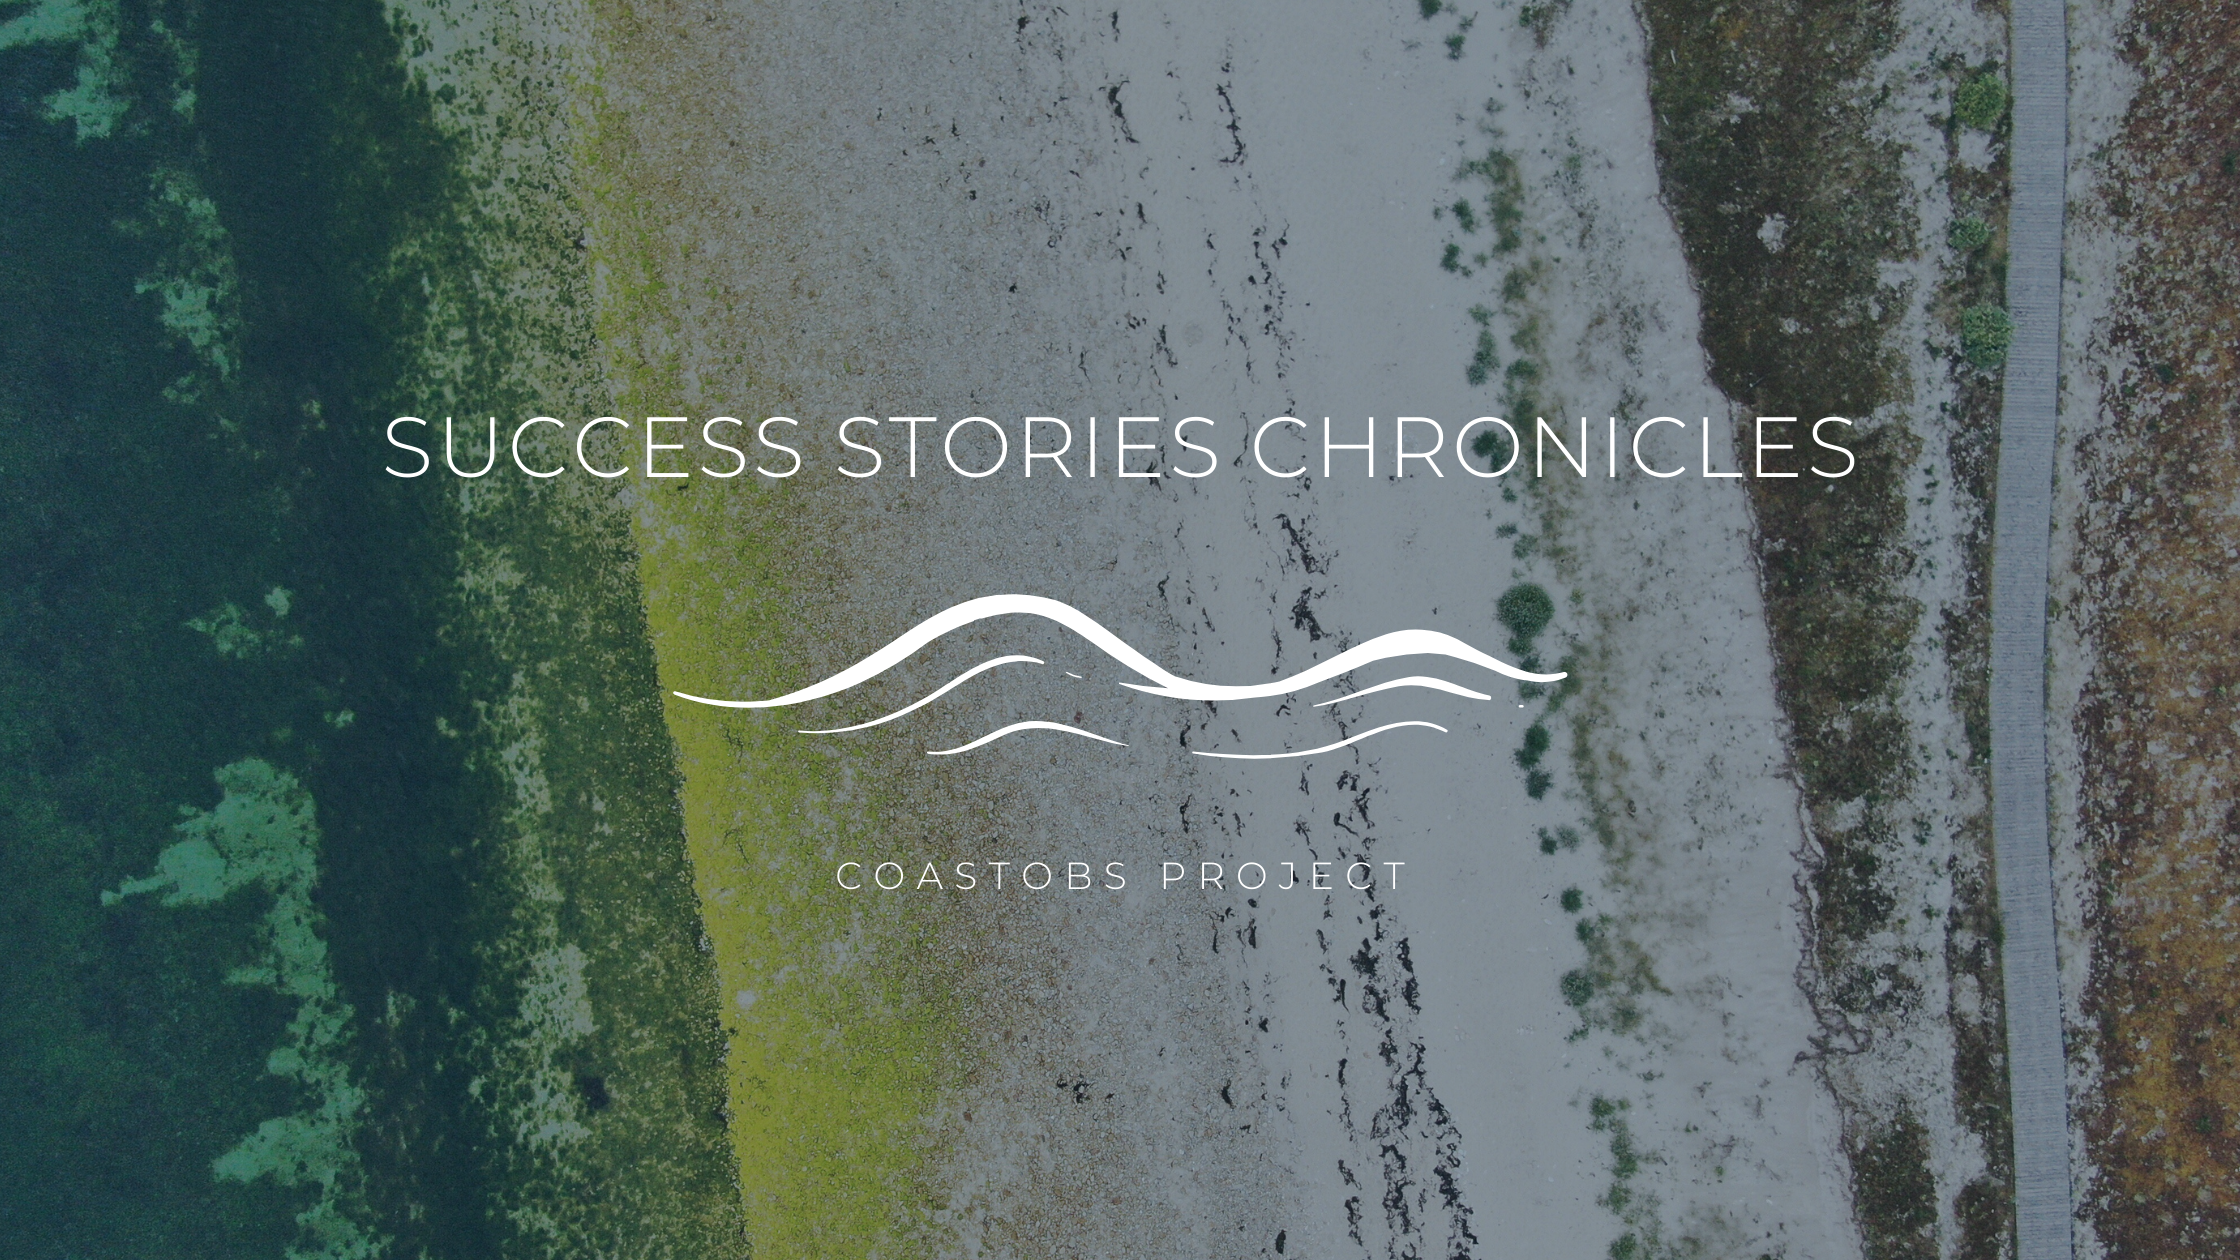 Success Story Chronicles are out!